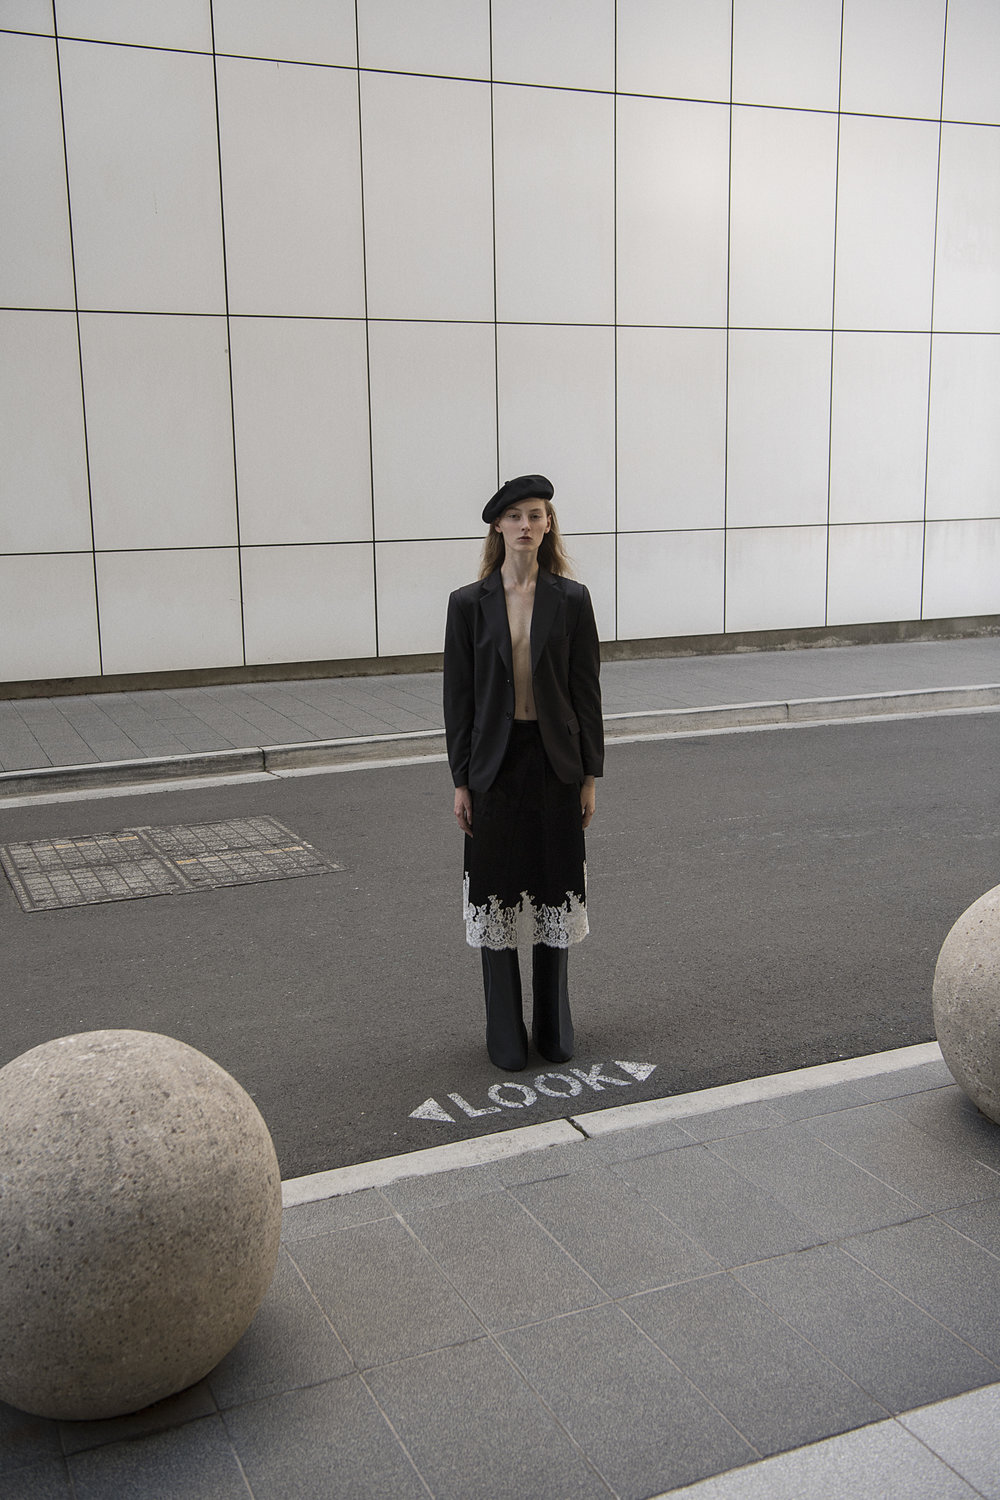 beret  stylist's own  blazor  fei fei yang  skirt + pants  céline  sneakers  models own